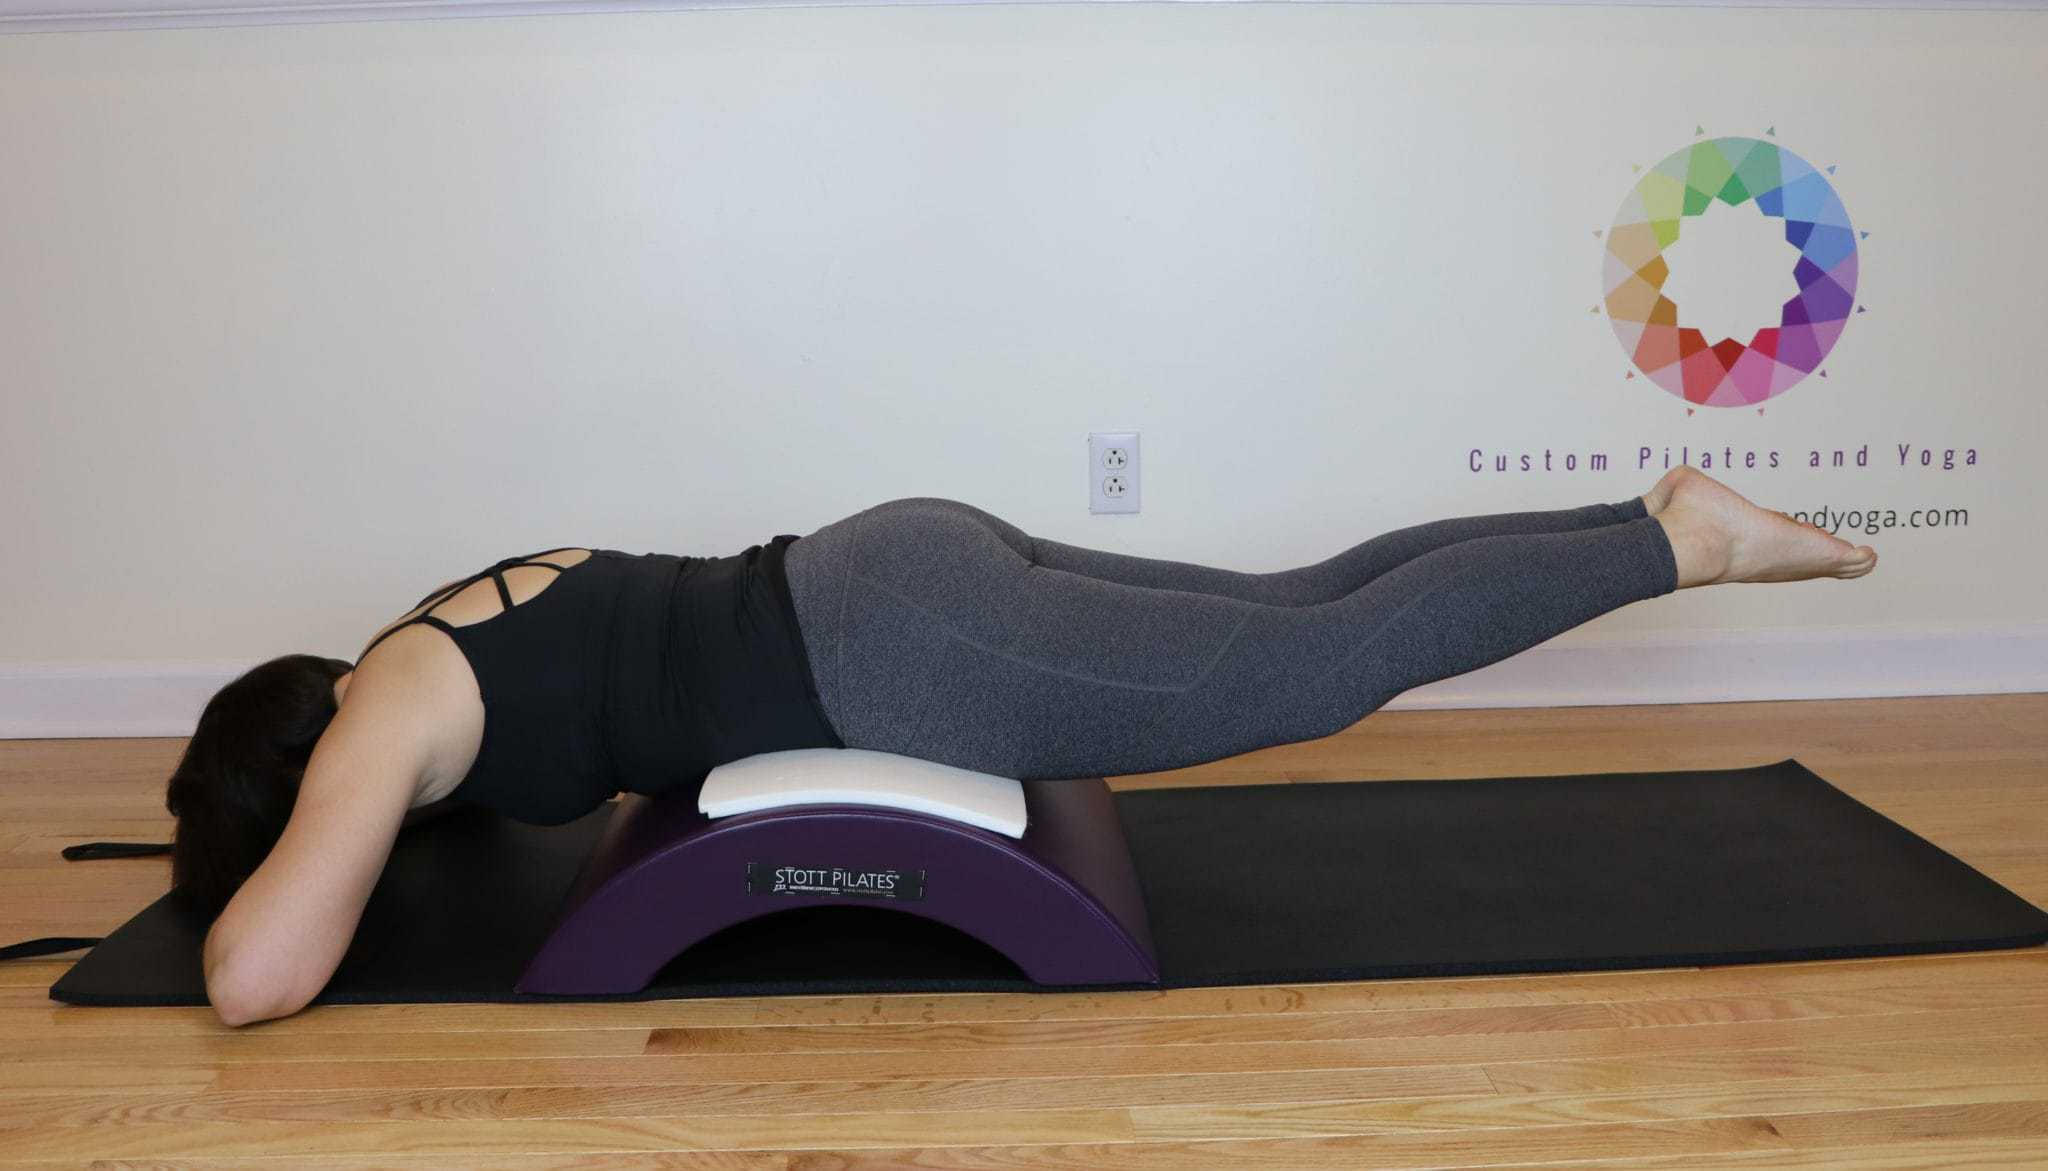 How to Do Lower and Lift Prone on the Pilates Arc Barrel